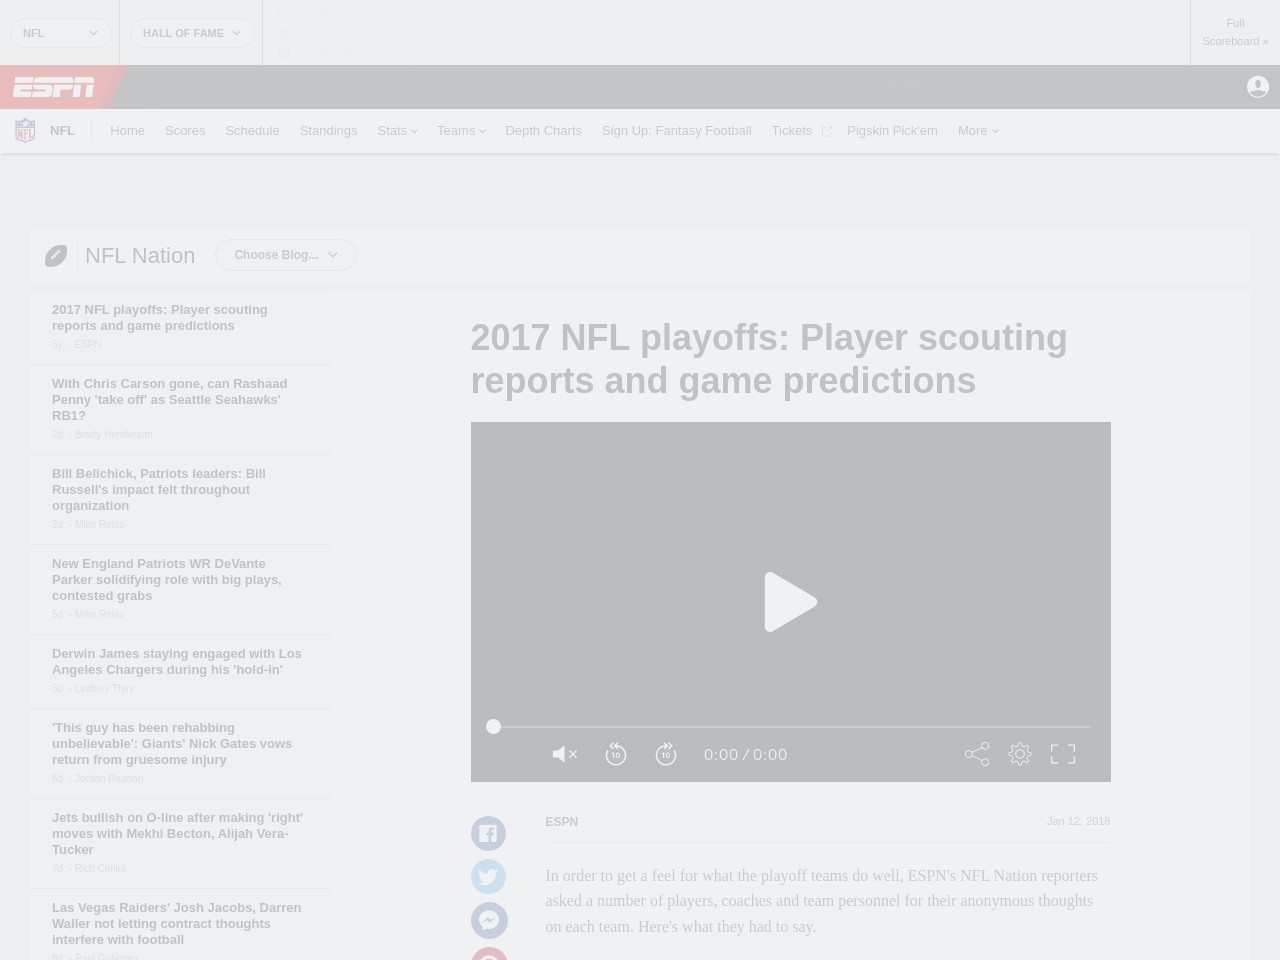 2017 NFL playoffs: Player scouting reports and game predictions